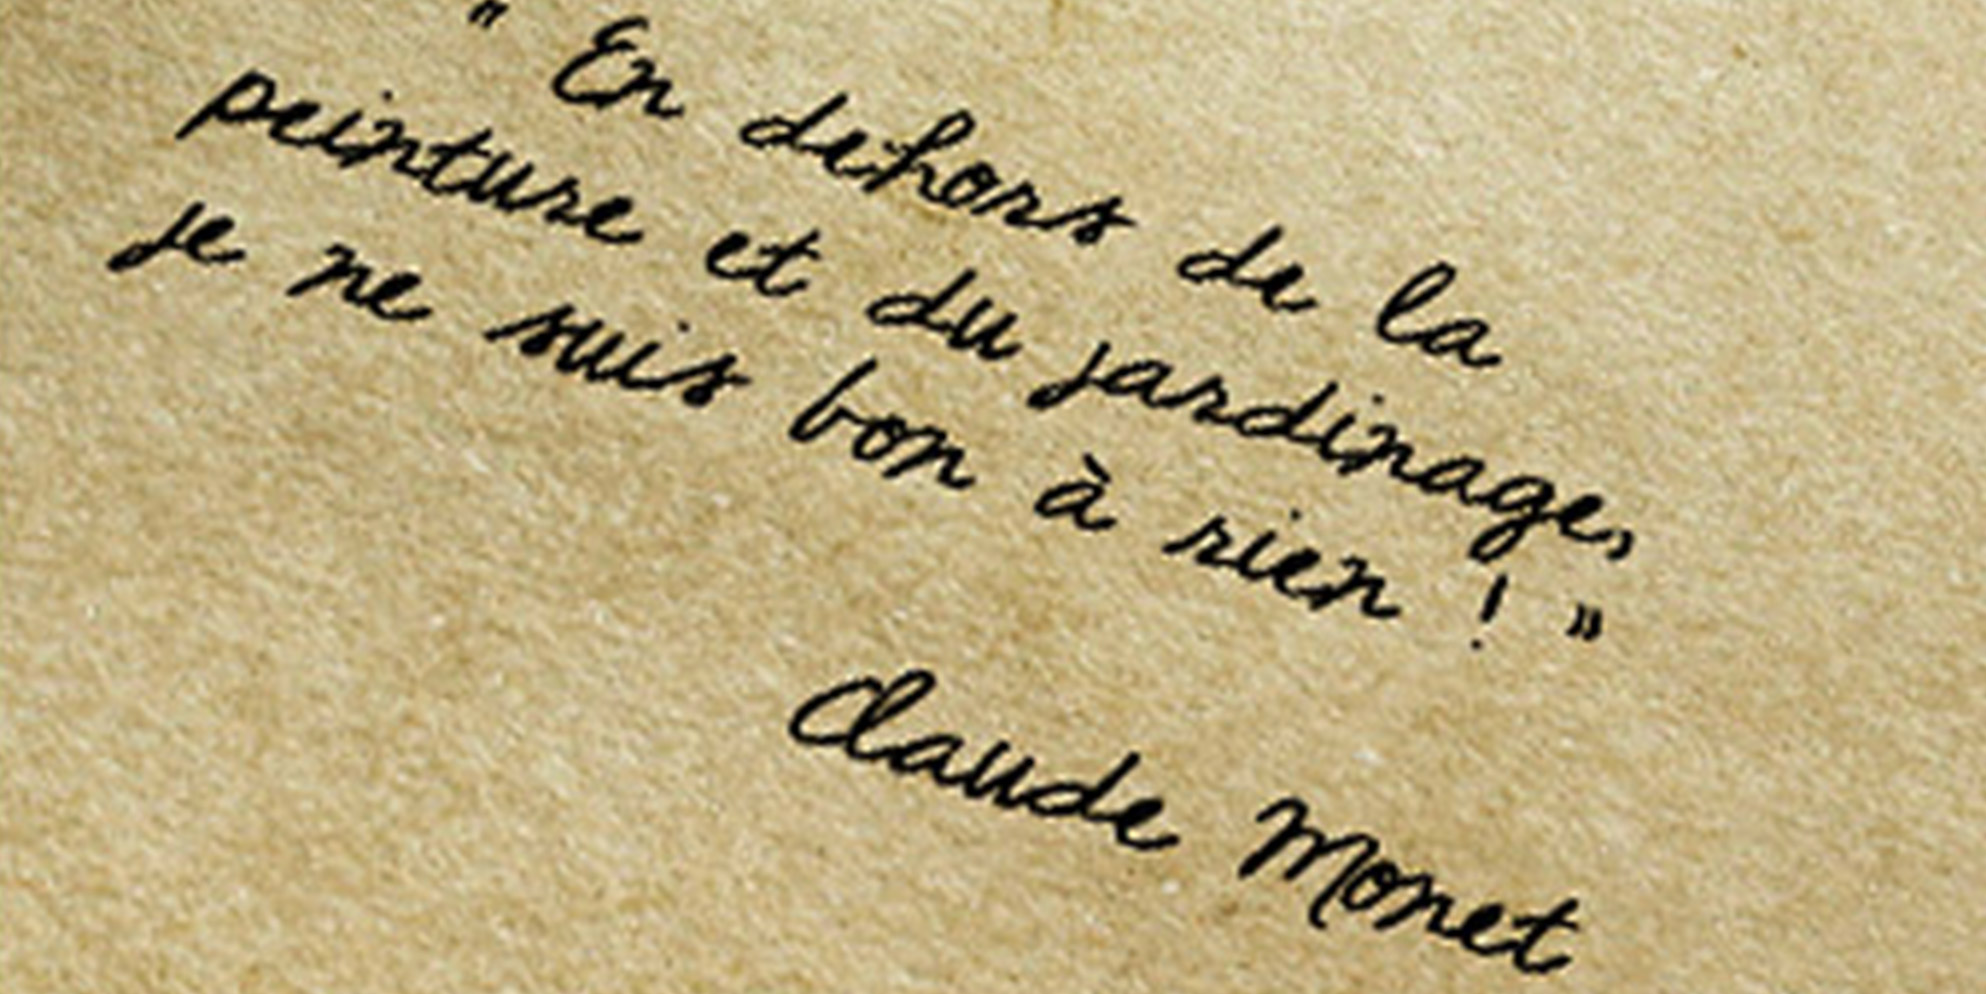 fondation claude monet quotations fondation claude monet